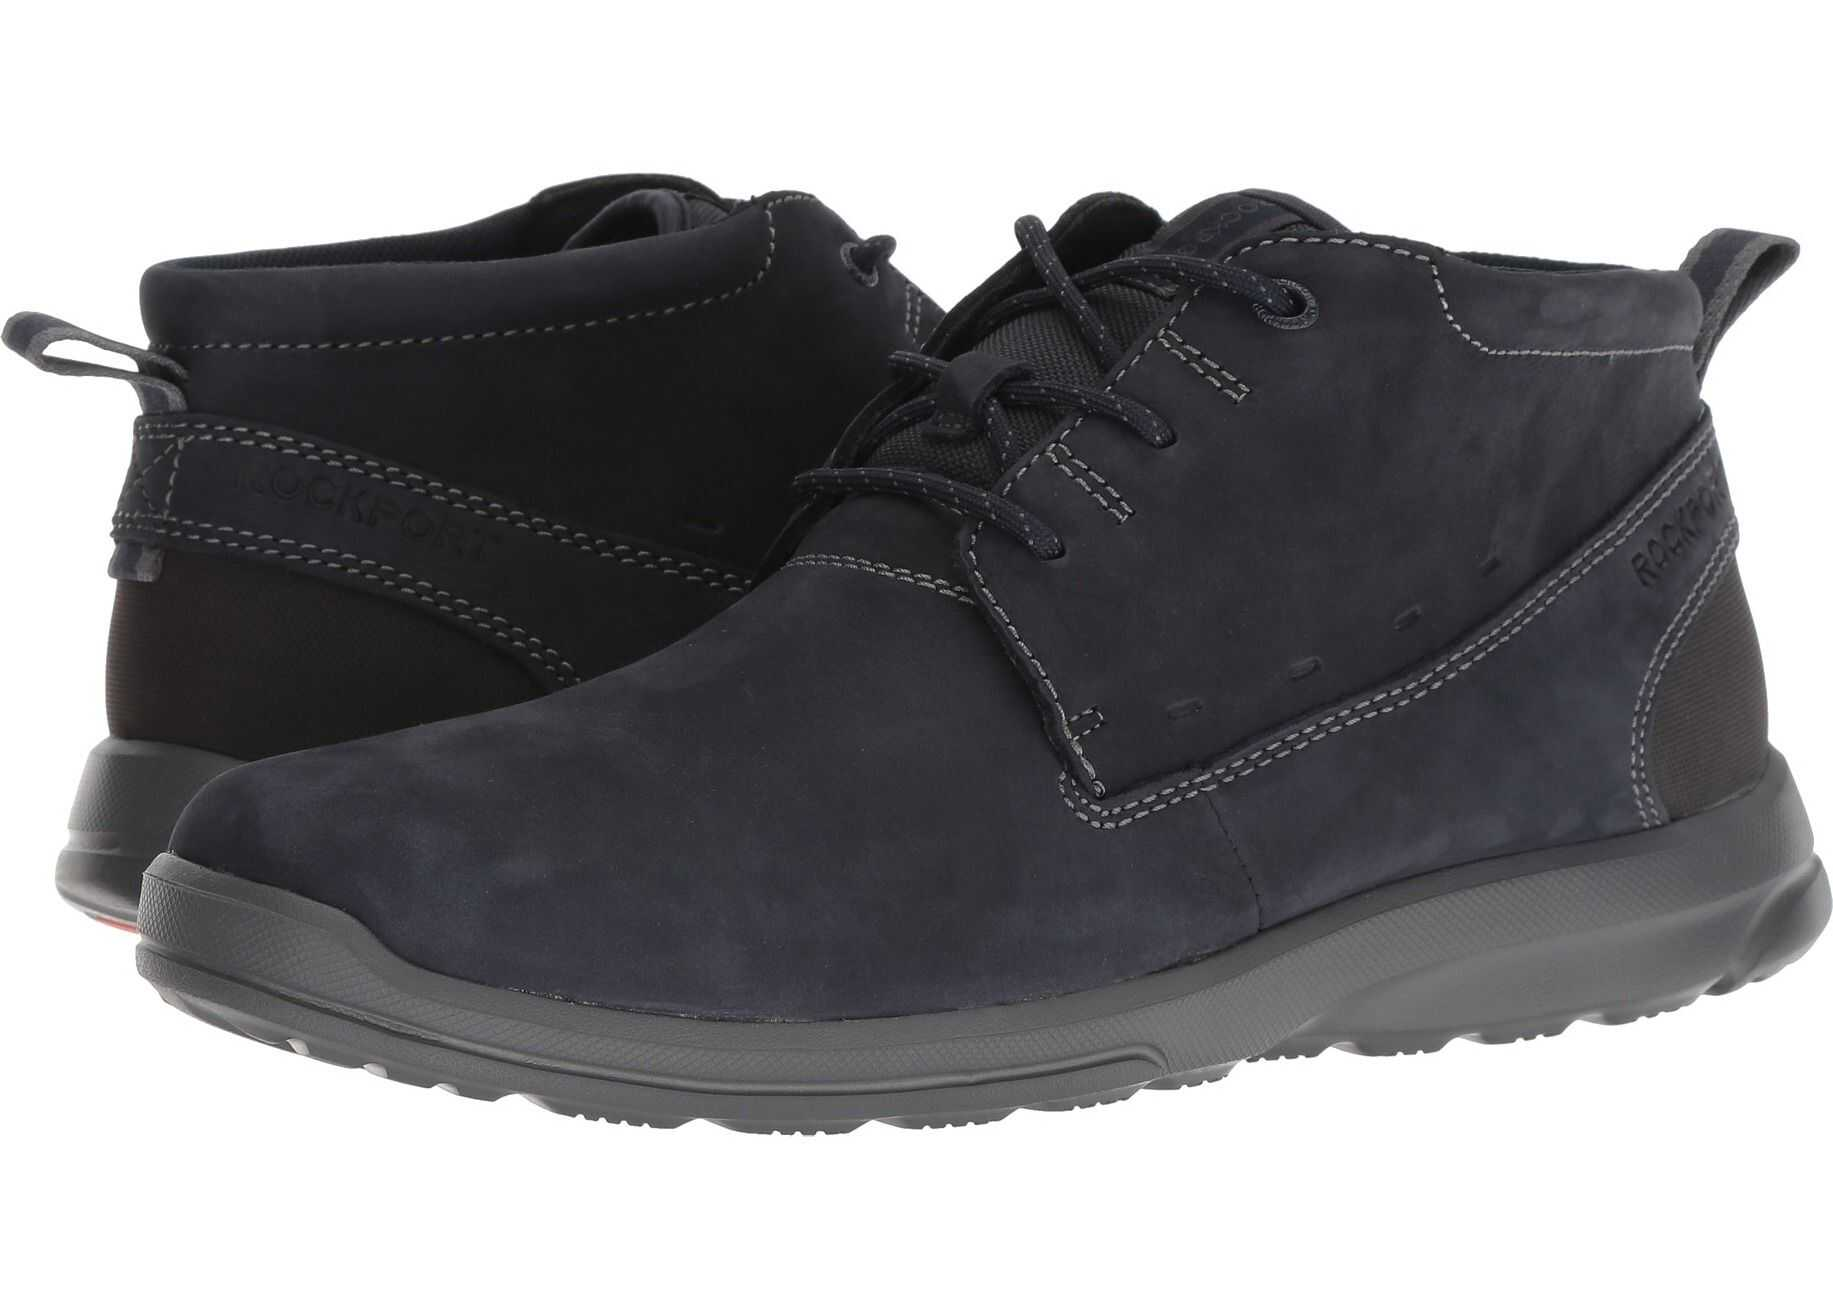 Rockport Rydley Chukka New Dress Blues Nubuck